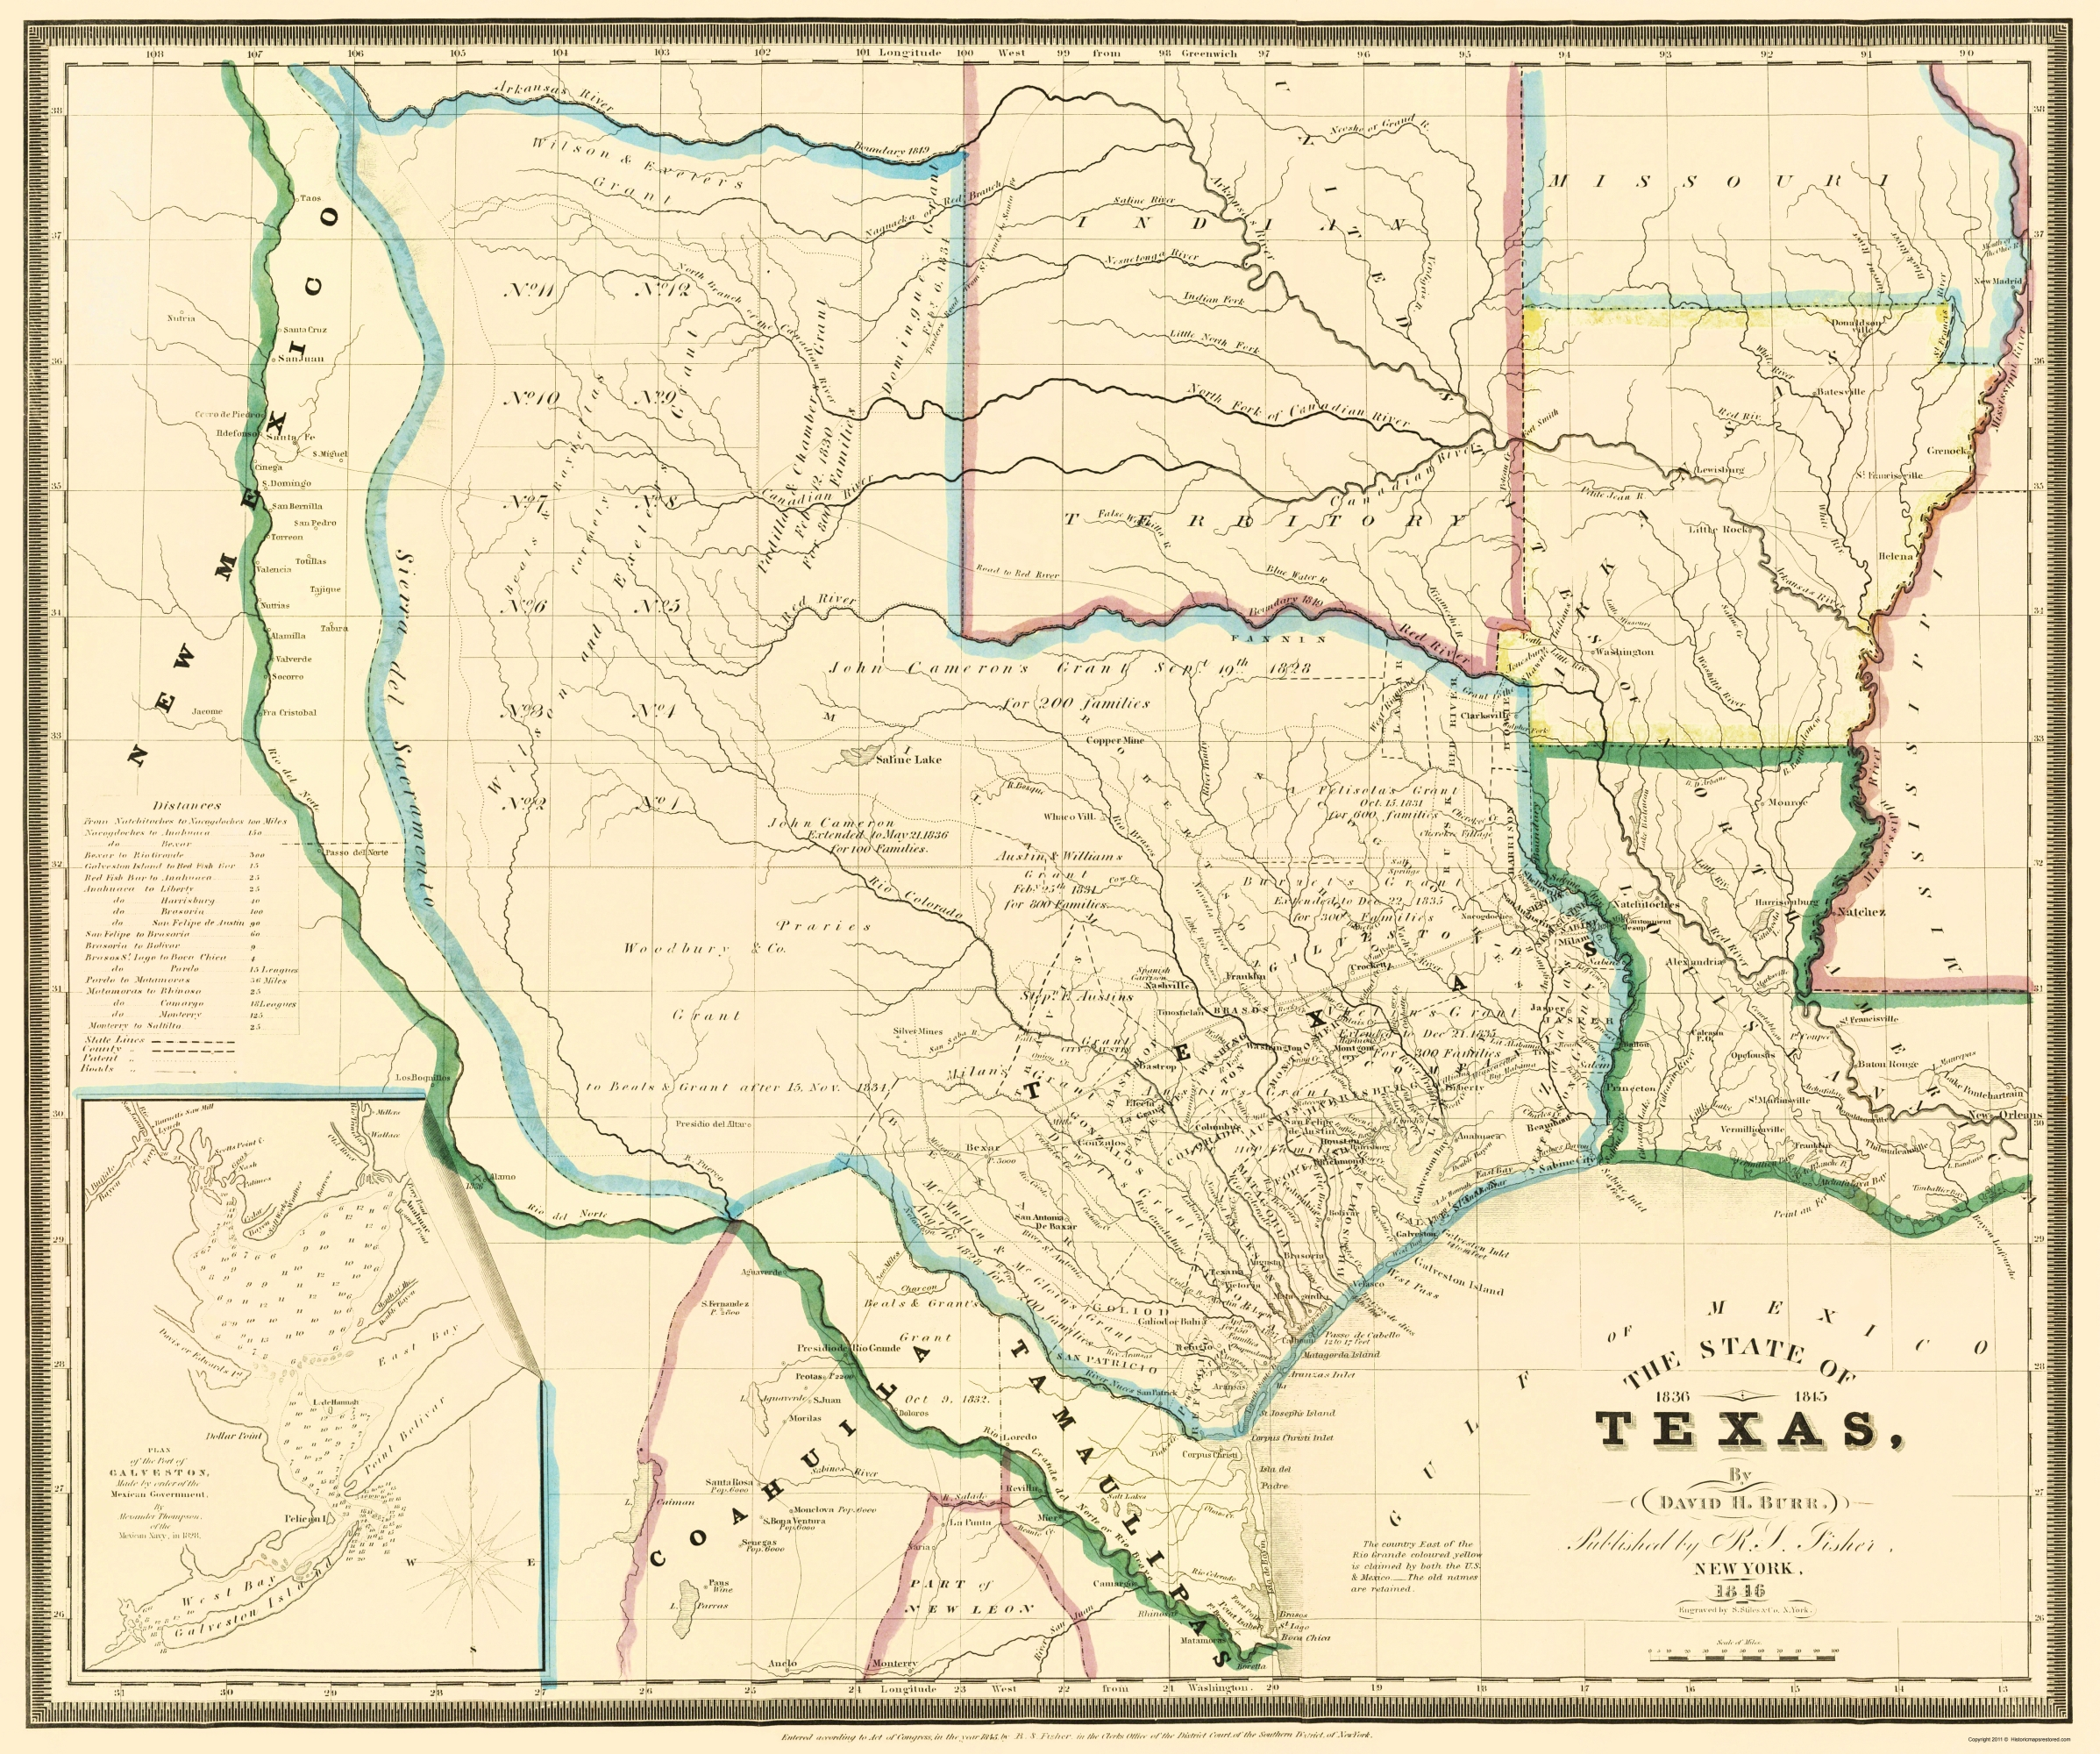 Old State Map - Texas - Burr 1846